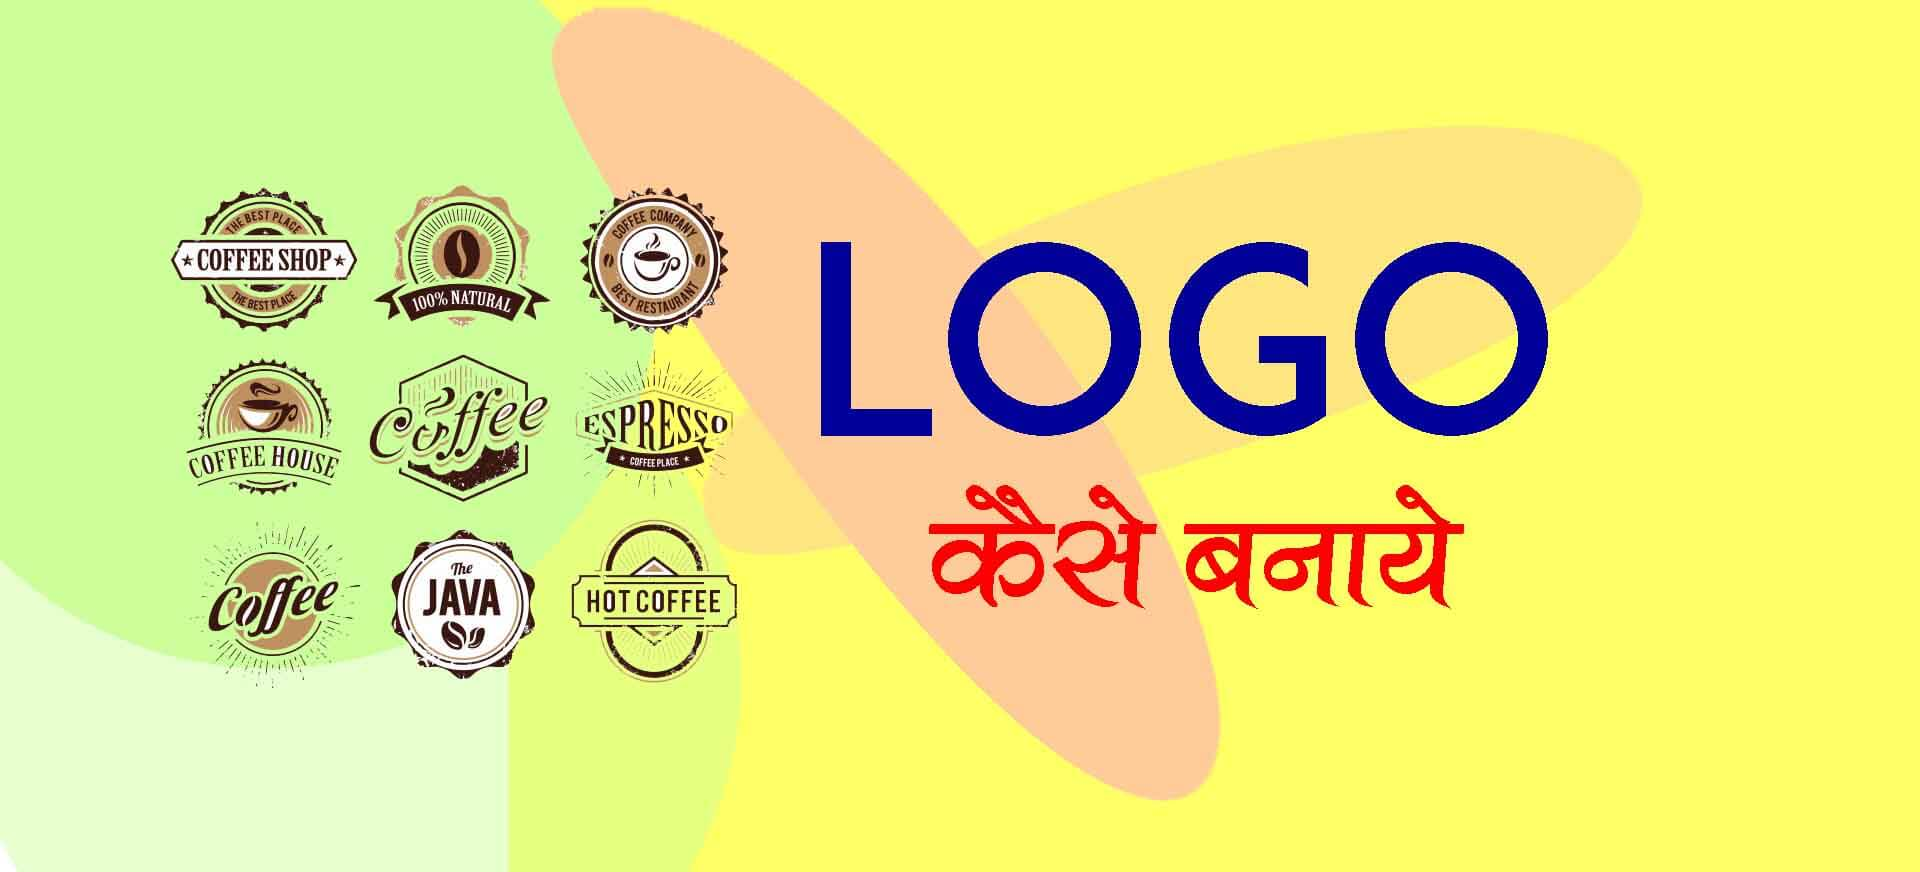 logo banane ka software